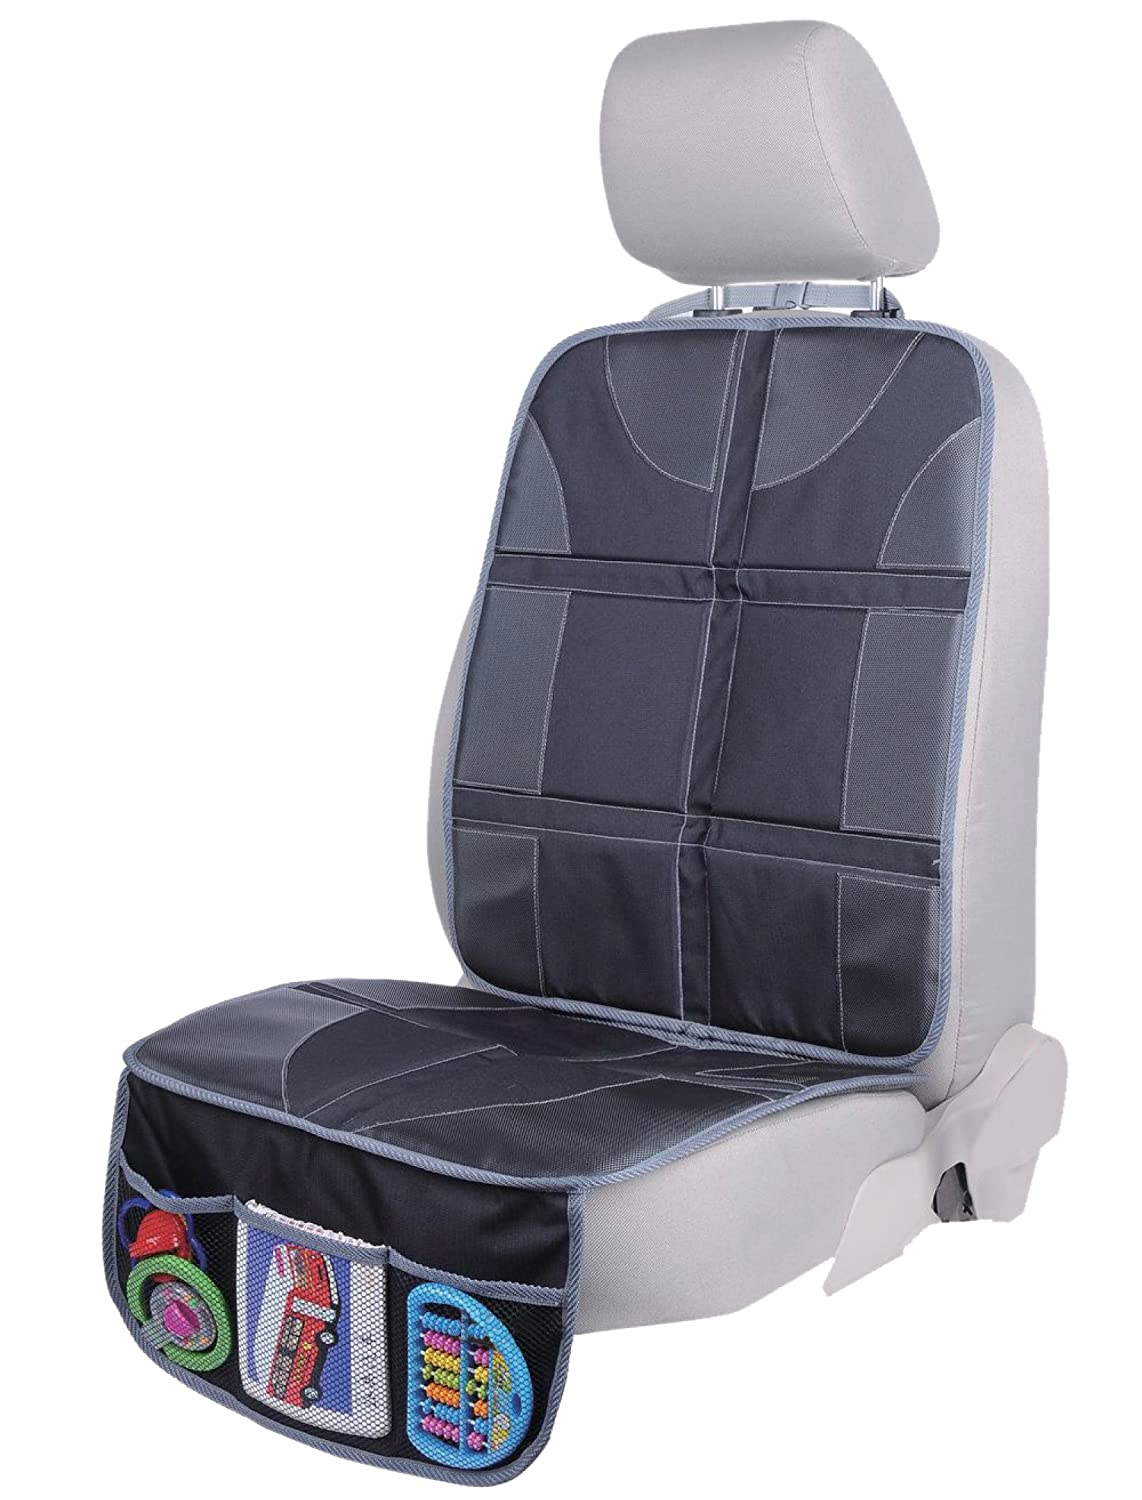 Jolly Jumper Car Seat Protector 221